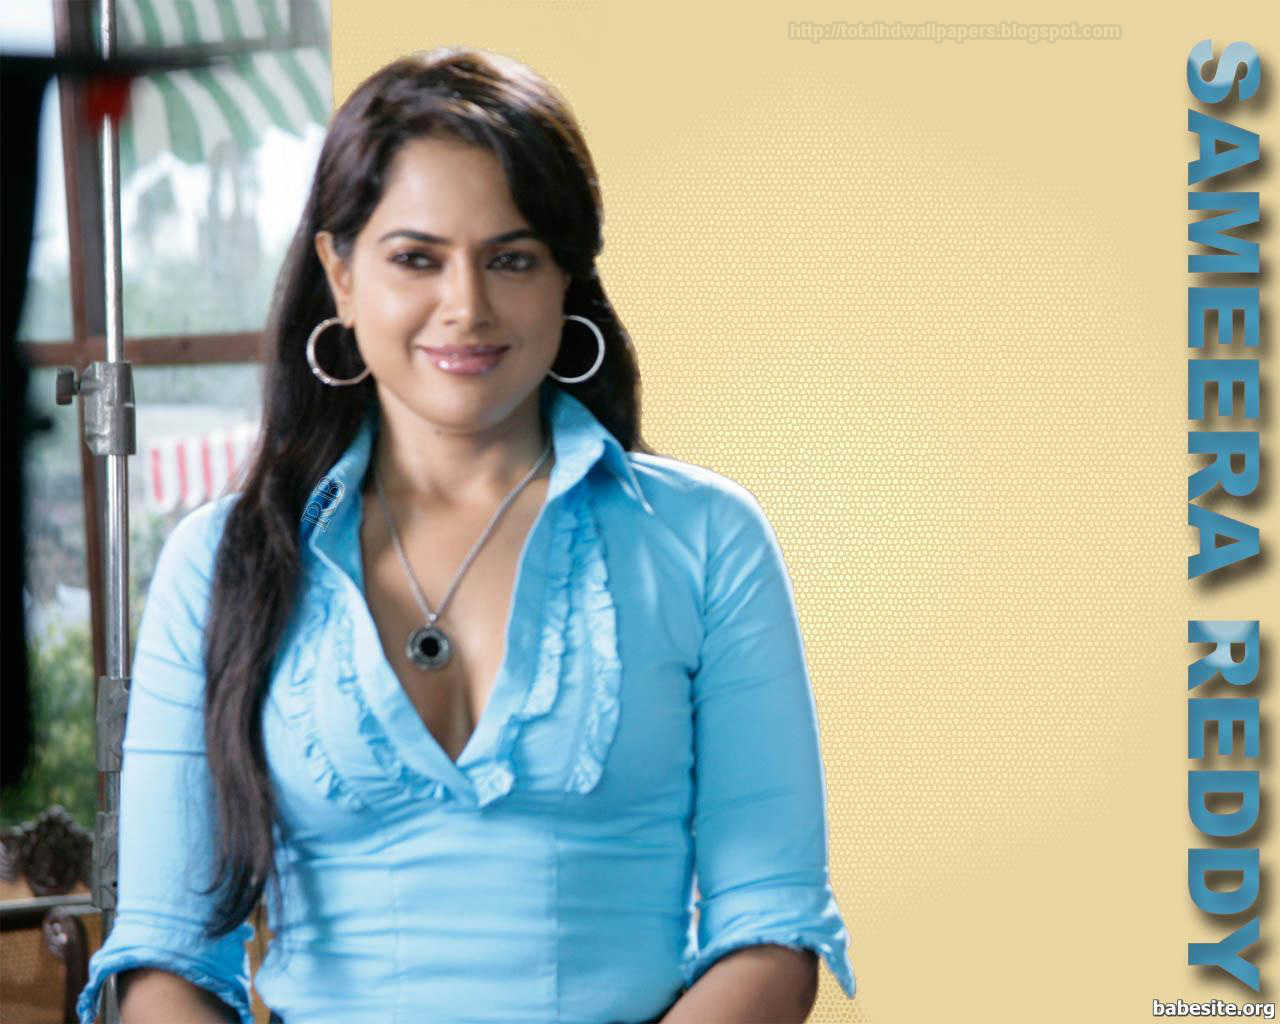 Actresses Hd Wallpapers Sameera Reddy Hd Wallpapers